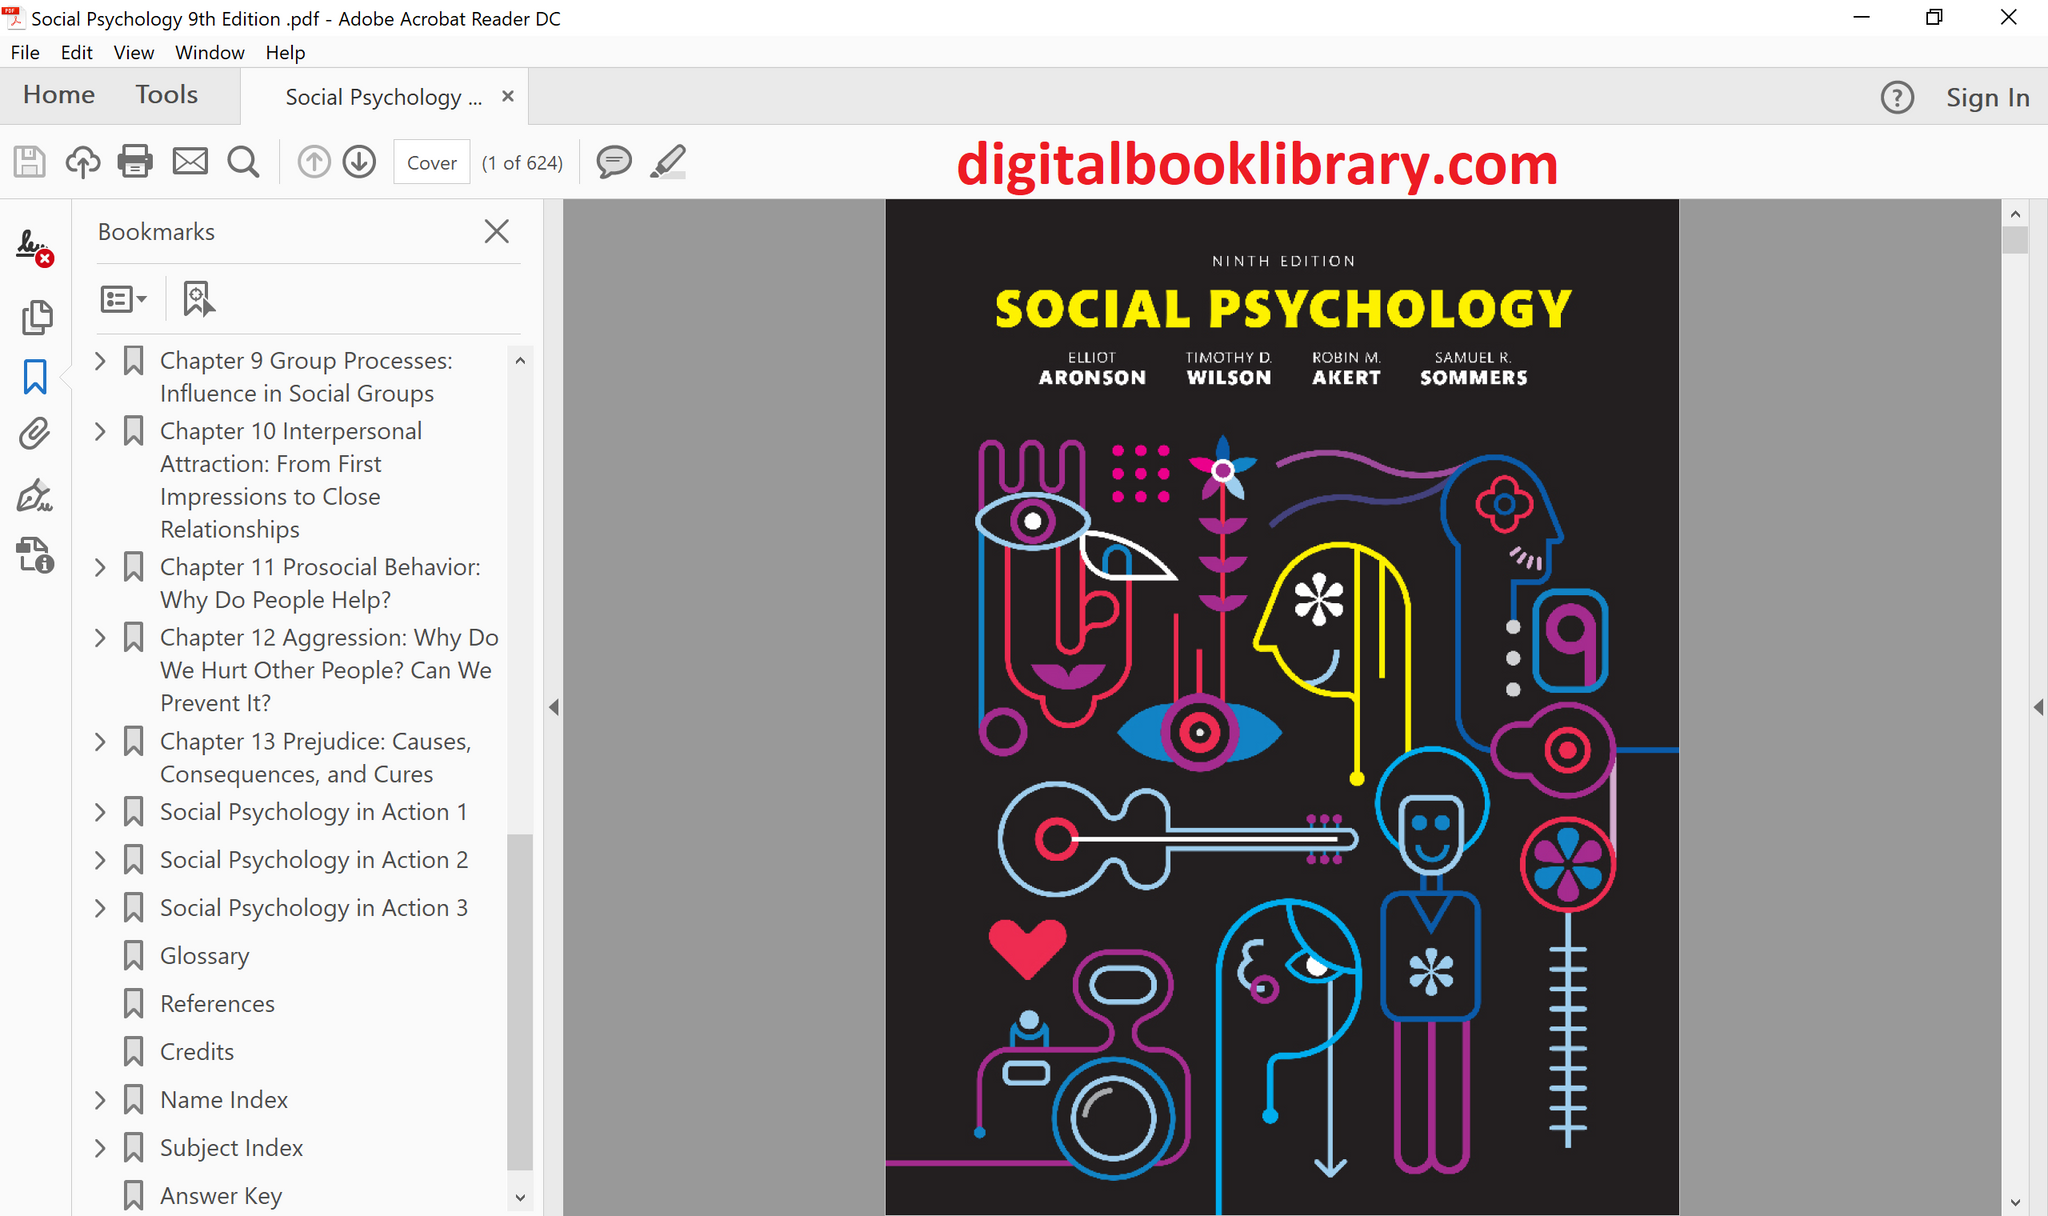 Social psychology 9th edition pdf version digital book library social psychology 9th edition pdf version fandeluxe Choice Image